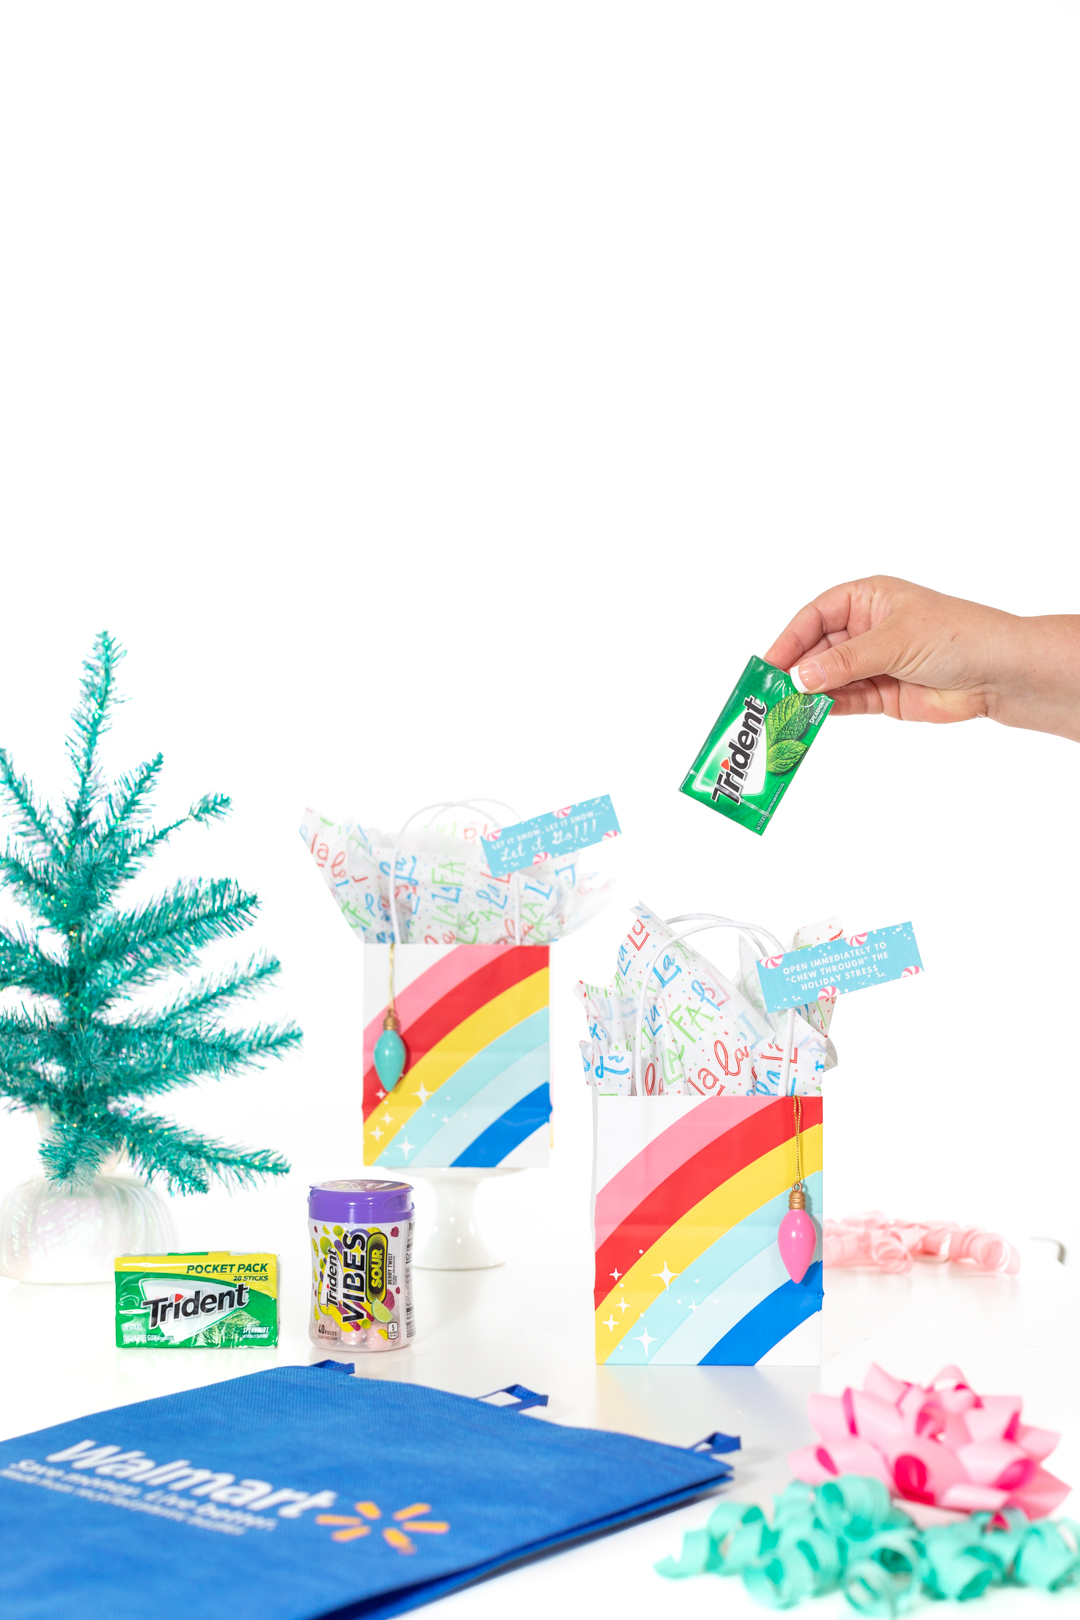 Adding gum to a gift bag for the holidays